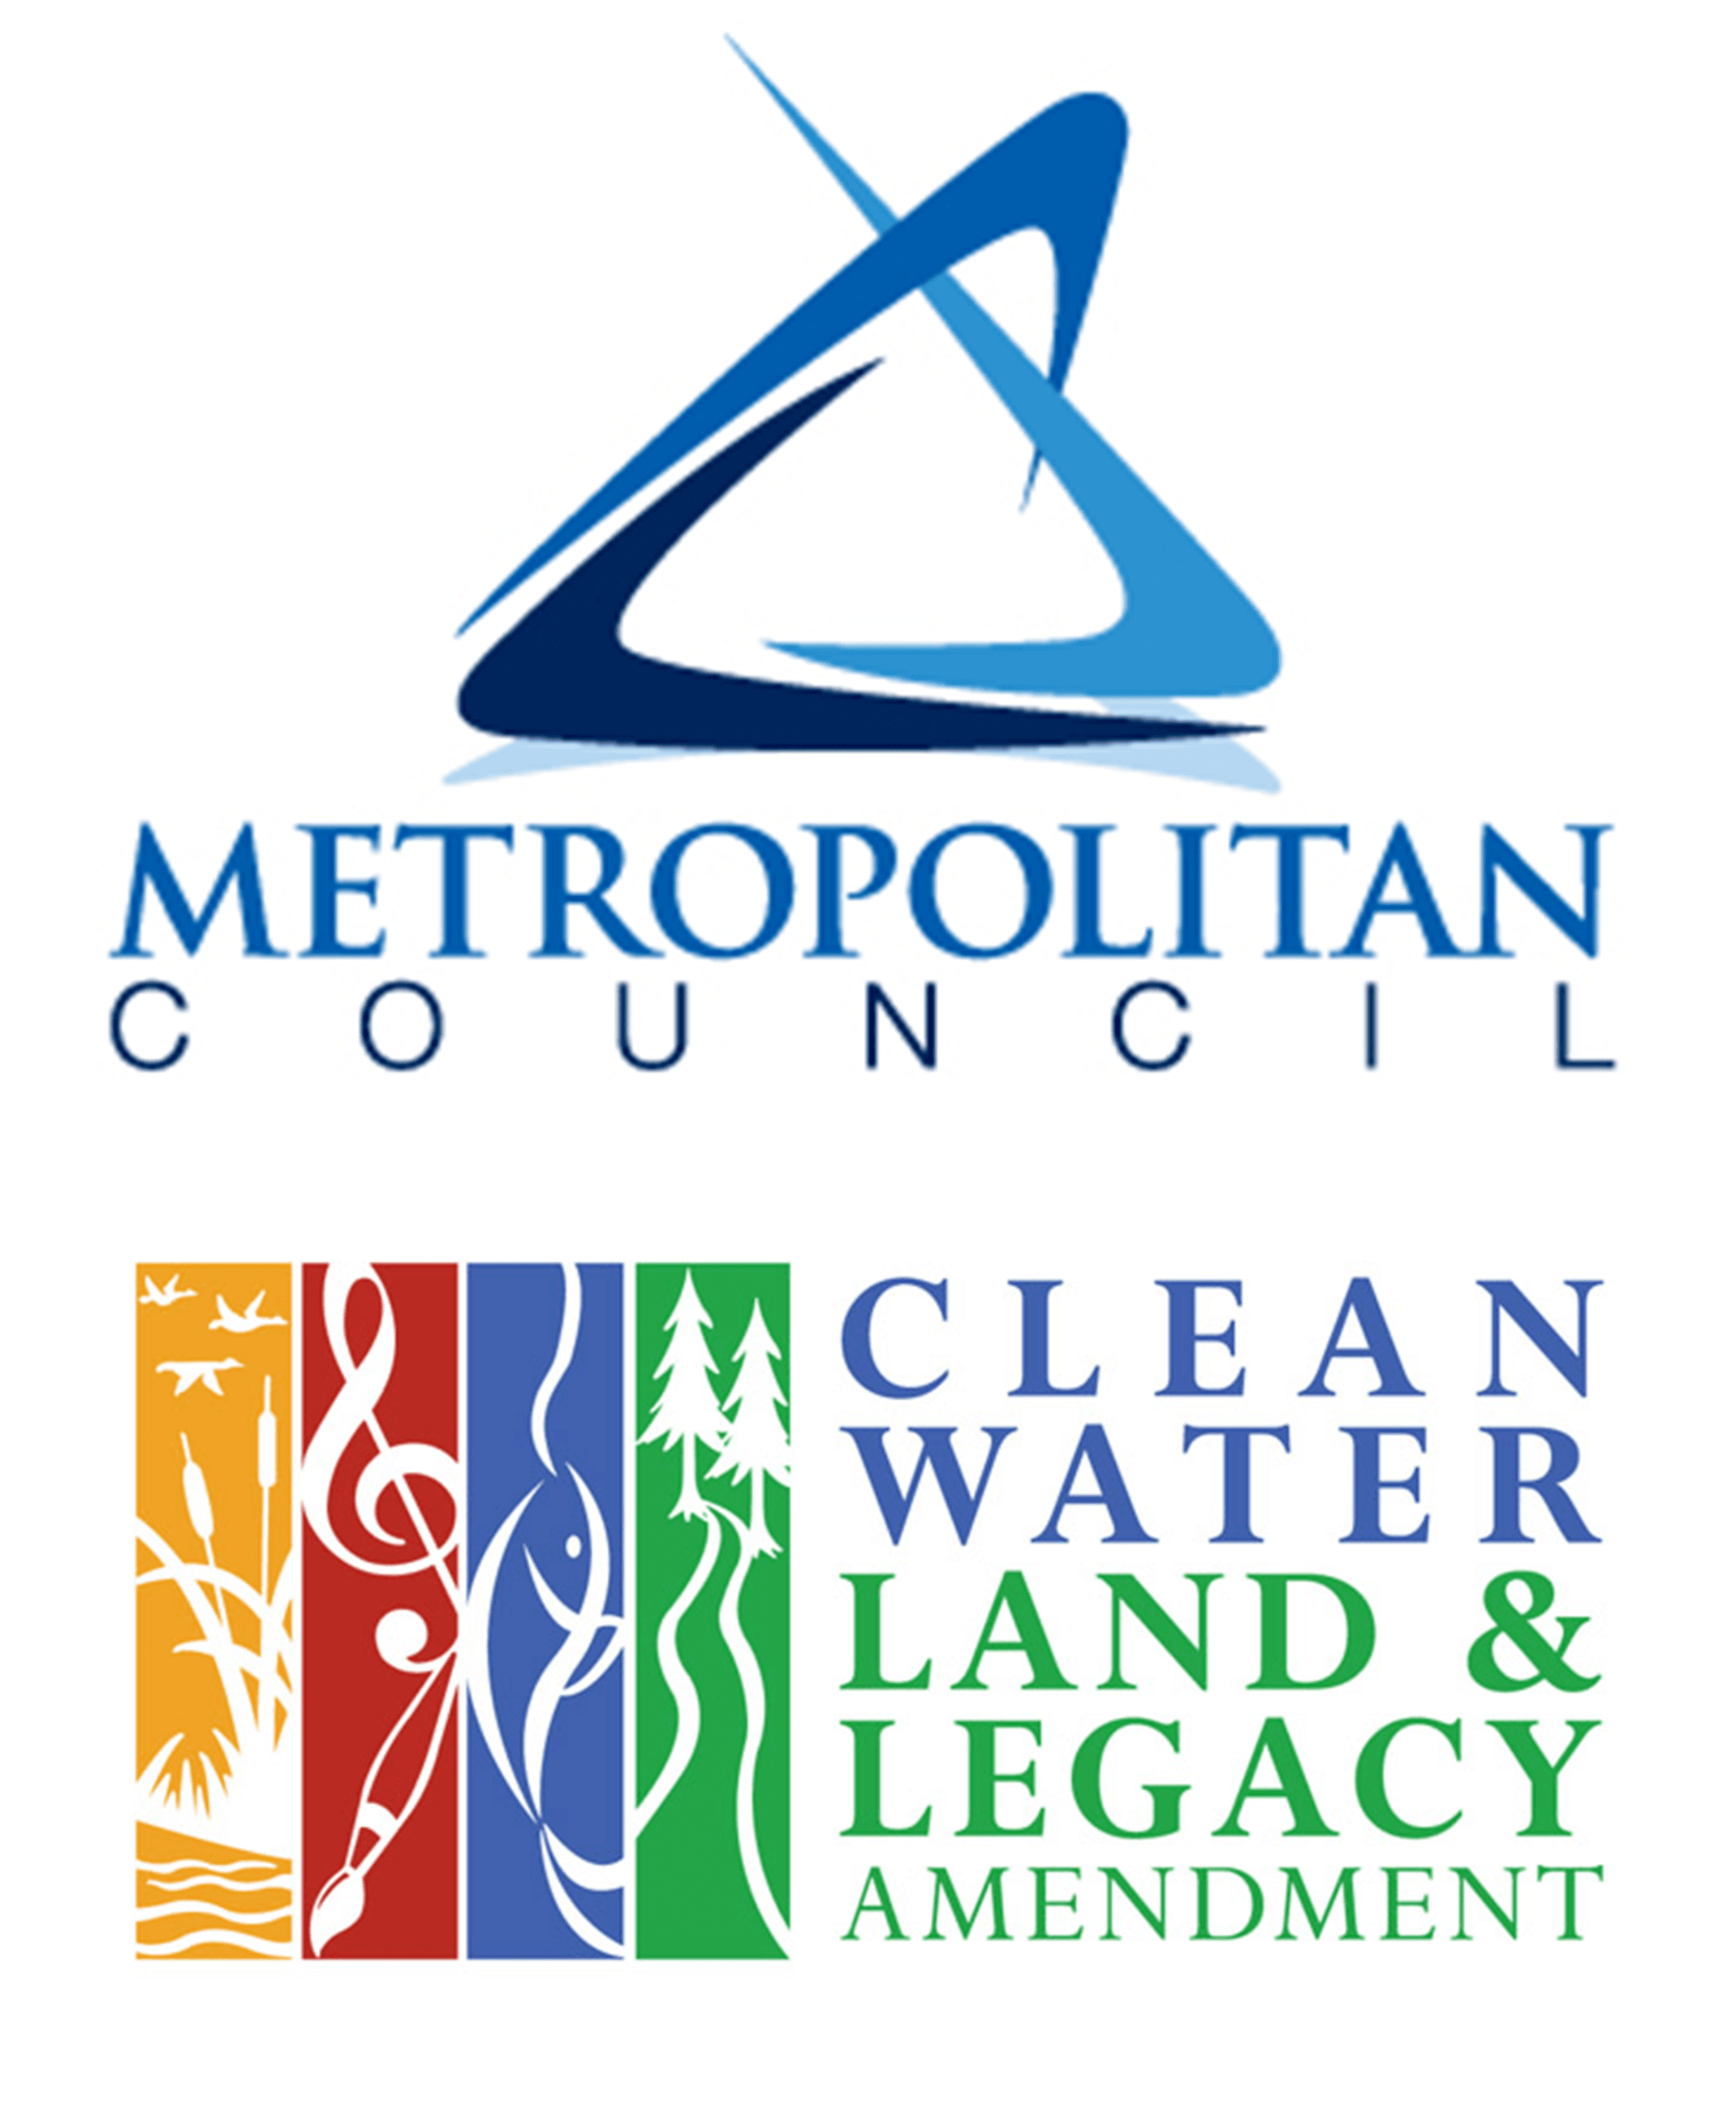 Metropolitan Council and Clean Water Land and Legacy Amendment.png